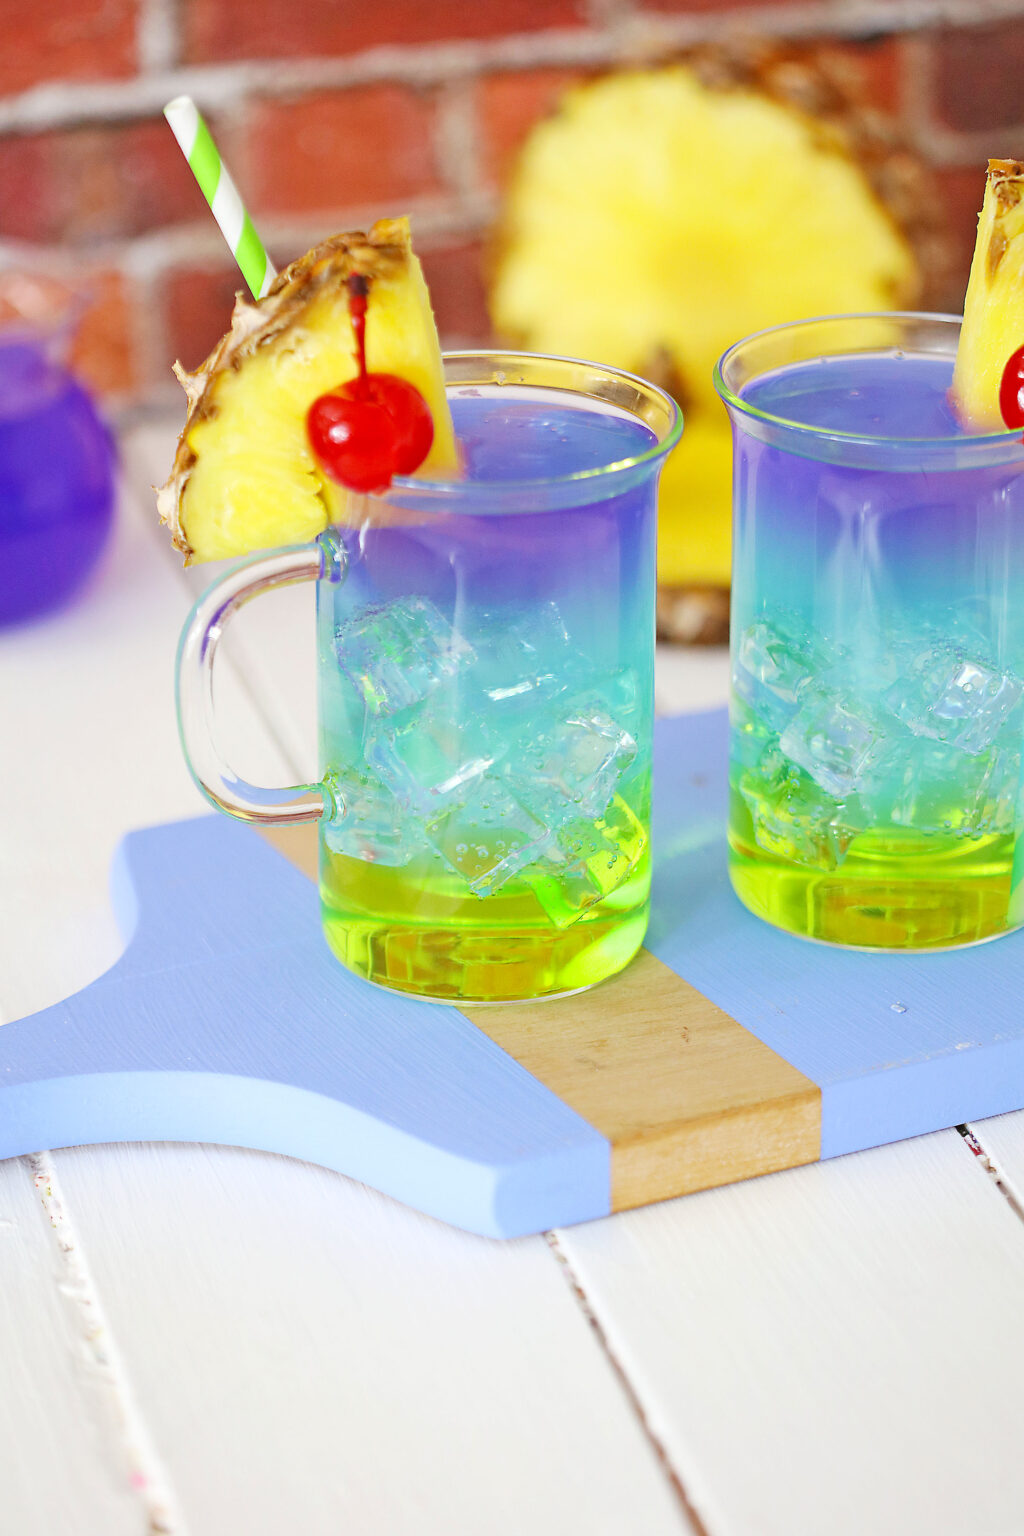 colorful mermaid cocktail in a glass on a cutting board